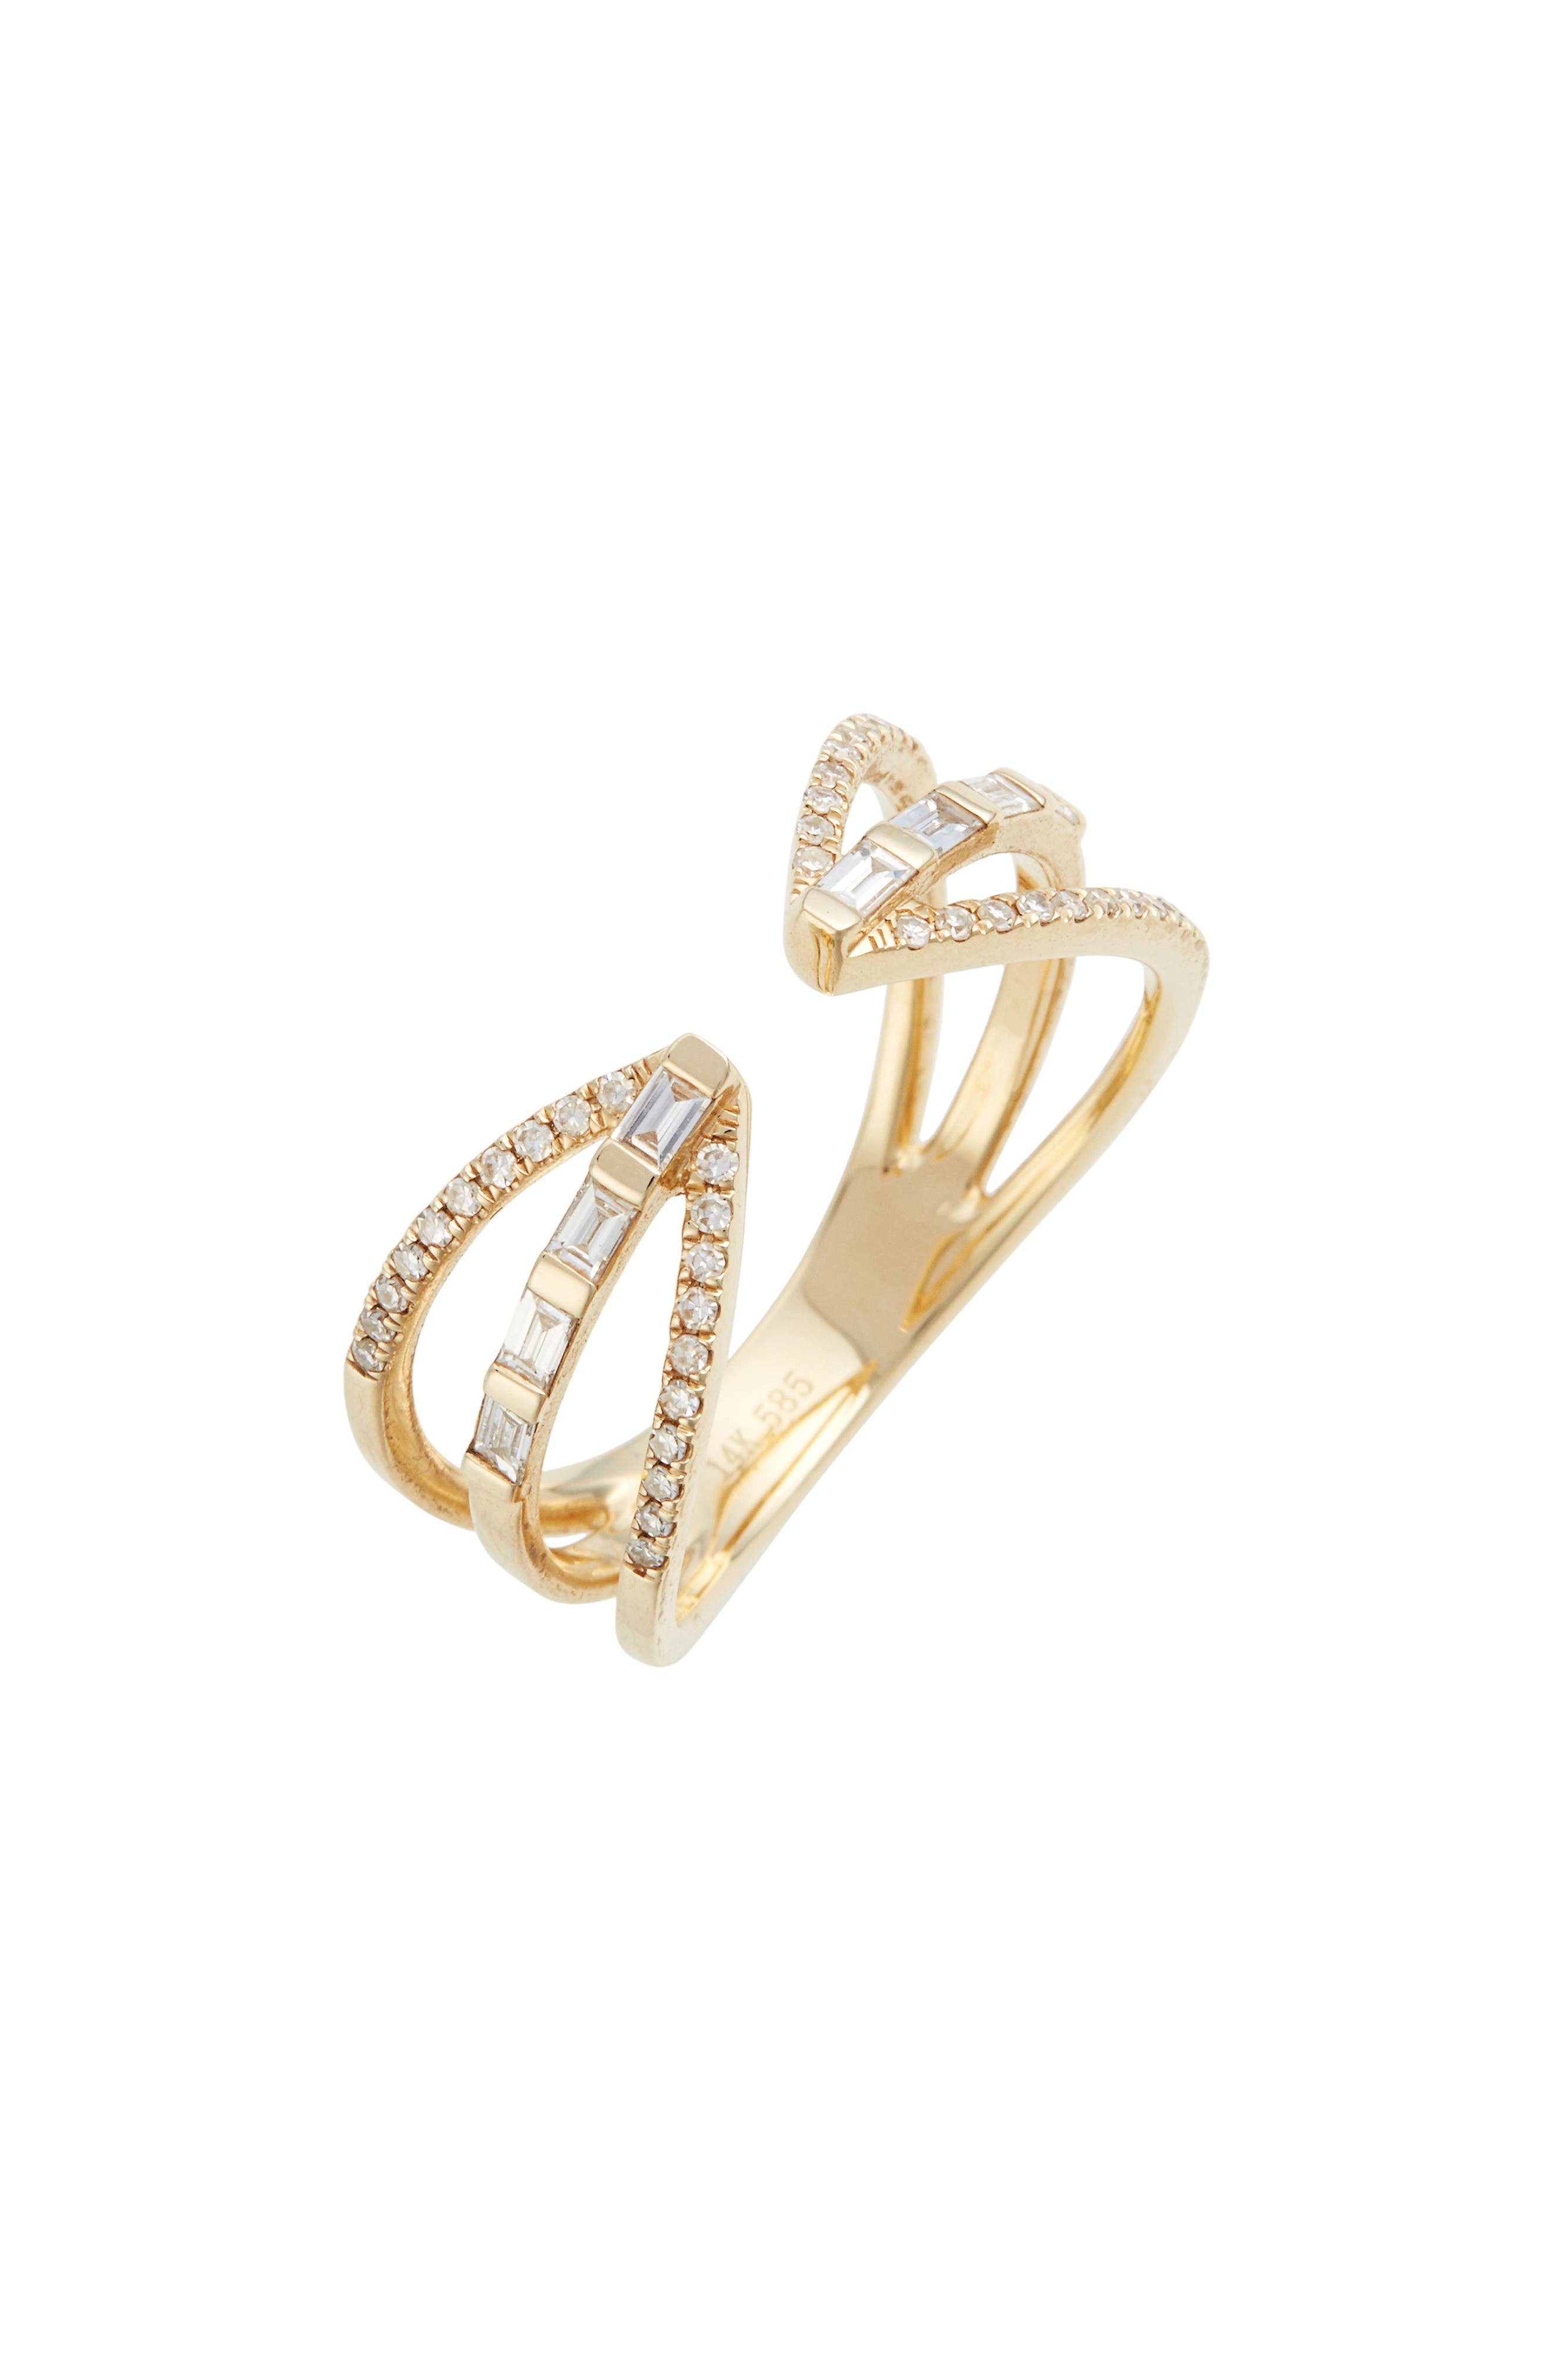 Open Baguette Queen Diamond Ring,                         Main,                         color, YELLOW GOLD